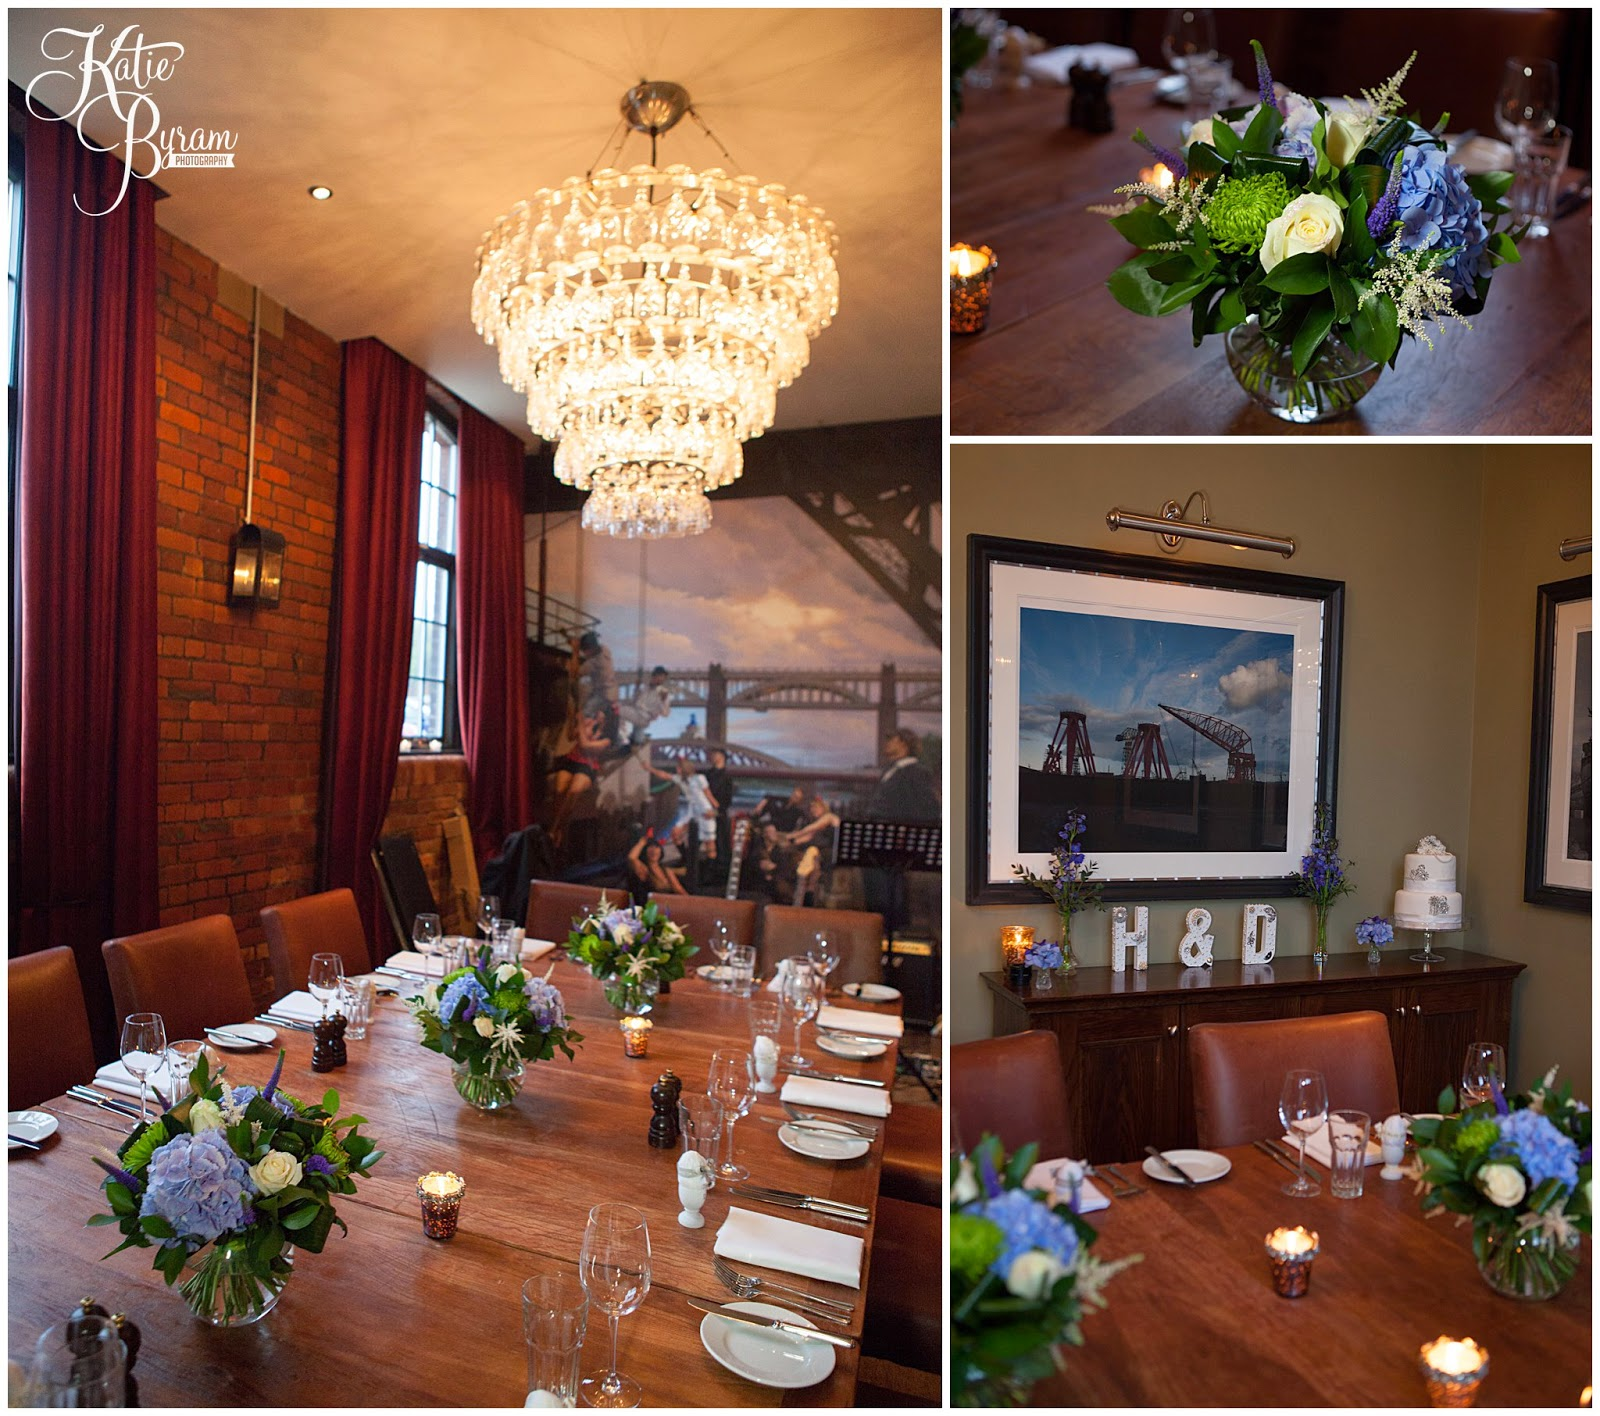 shipyard room, hotel du vin newcastle, hotel du vin wedding, hotel du vin wedding photographs, hotel du vin newcastle wedding photographs, vintage wedding, small wedding, katie byram photography, newcastle wedding venue, city wedding venue